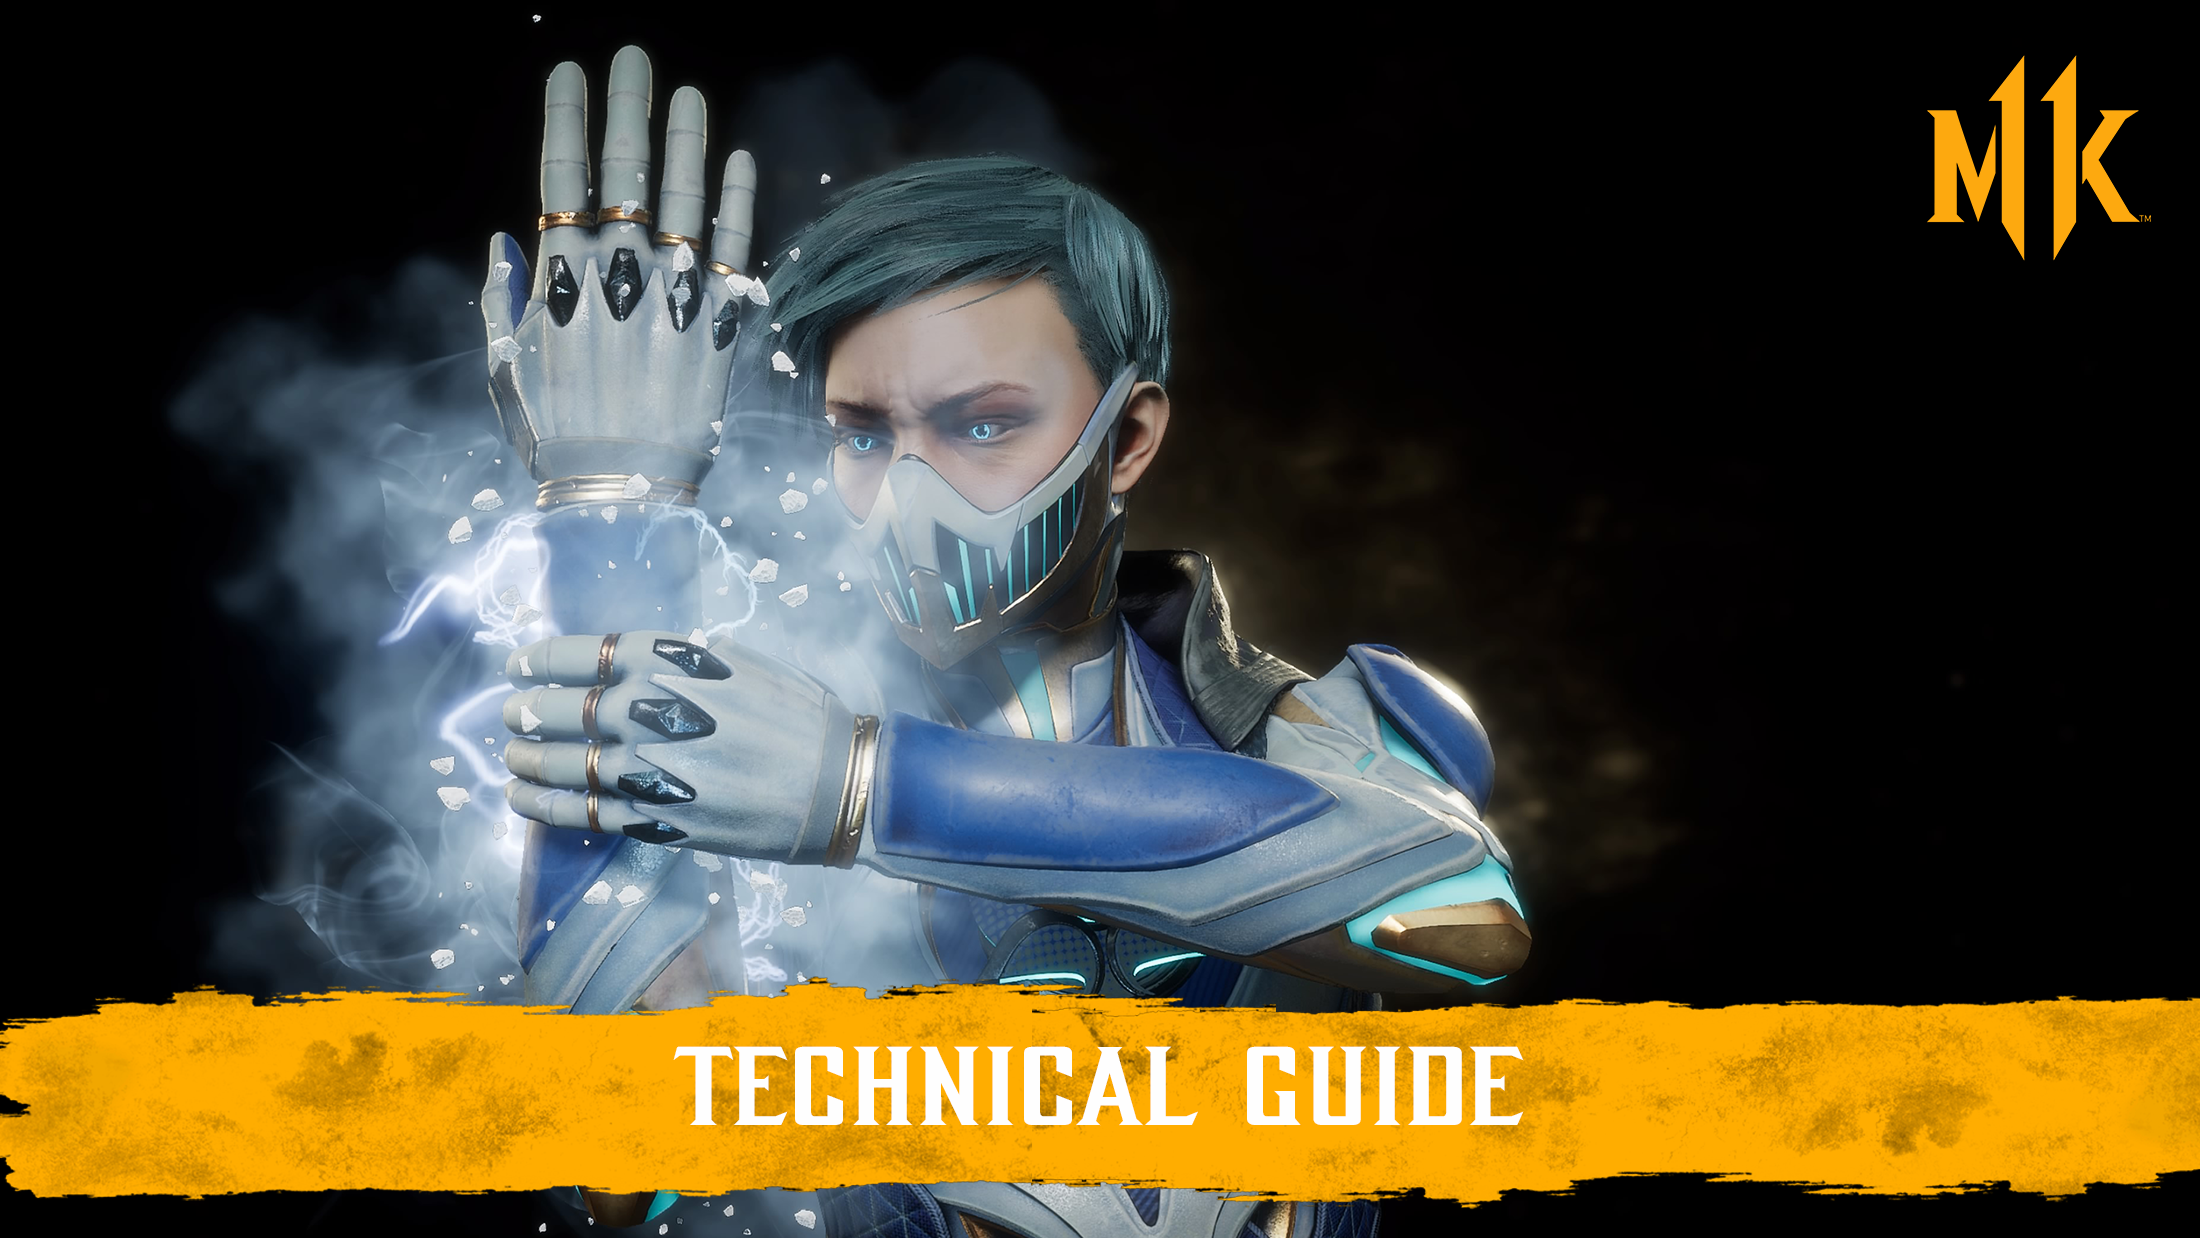 TECHNICAL_GUIDE3.png